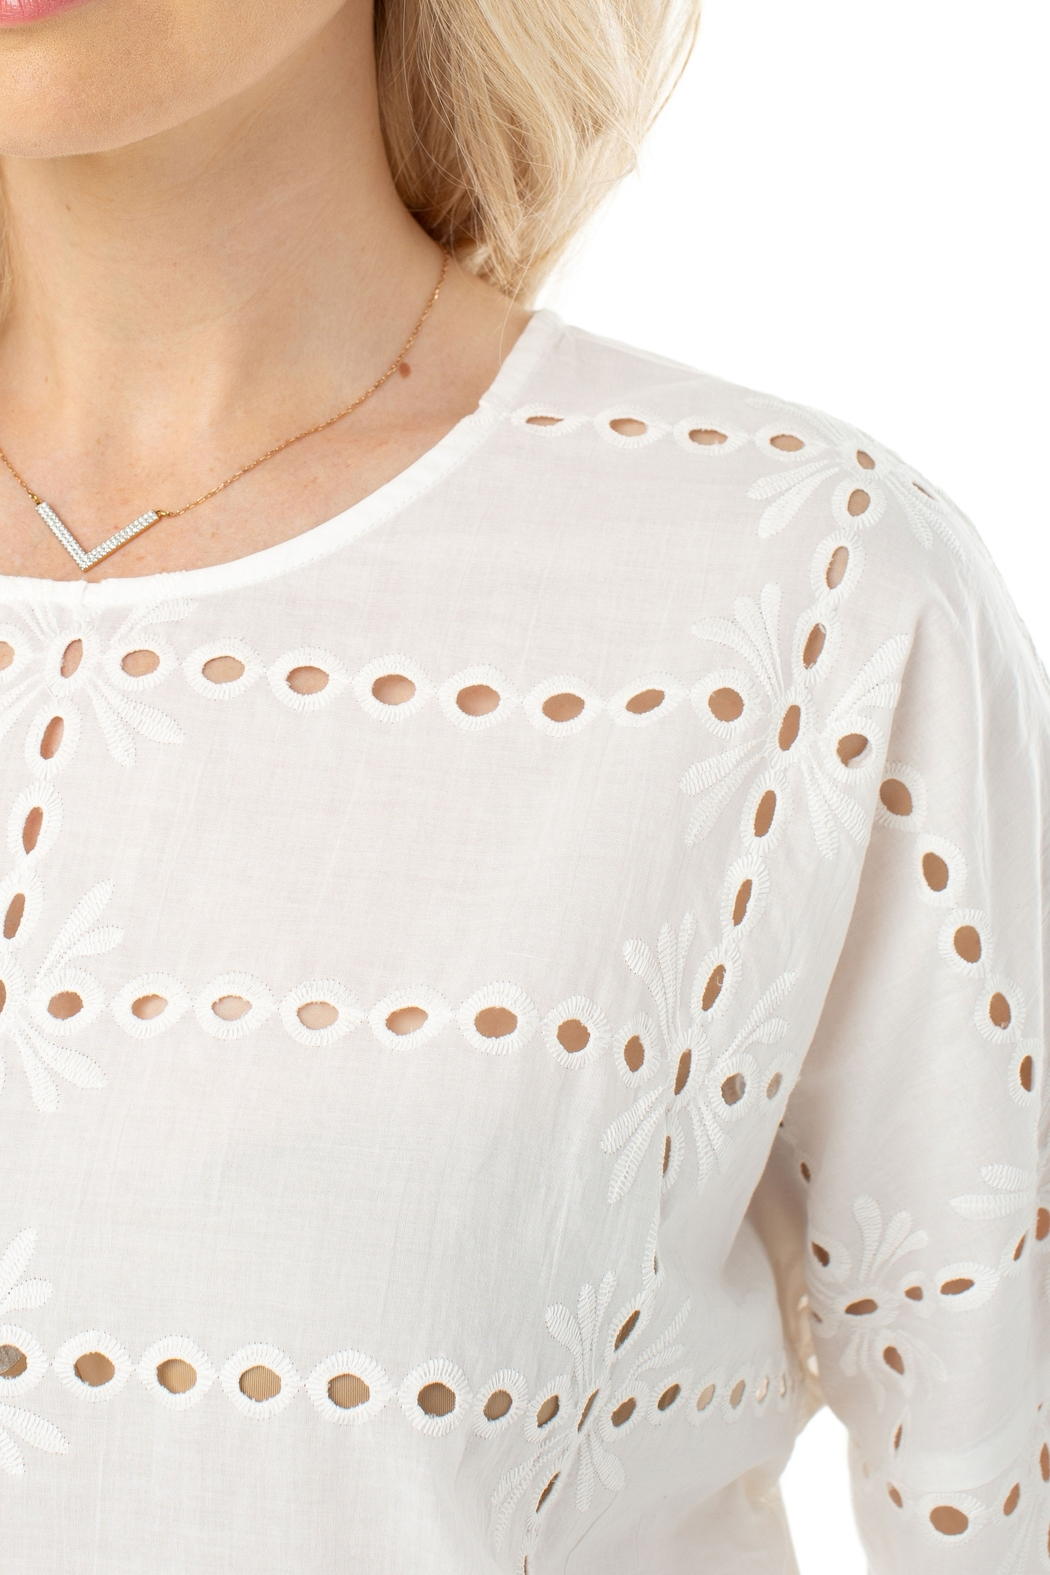 Liverpool  White Eyelet Dolman Sleeve Top 1253 - Side Cropped Image